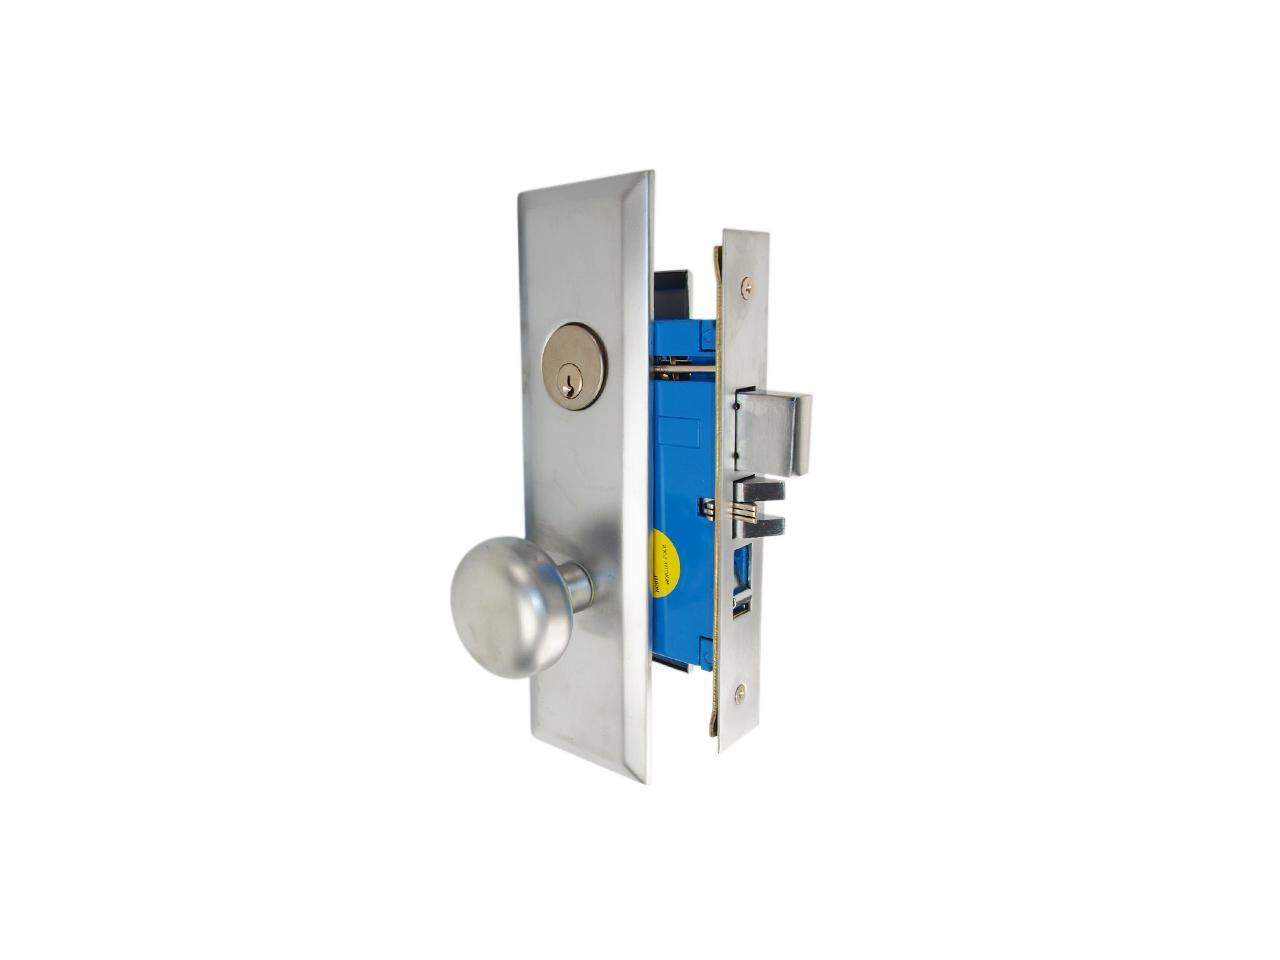 Picture of: Maxtech Marks New Yorker 7ny10a 26d Like 1033bf26dl Satin Chrome Left Hand Heavy Duty Mortise Entry Lockset Screwless Knobs Thru Bolted 2 3 4 Lock Set Newegg Com